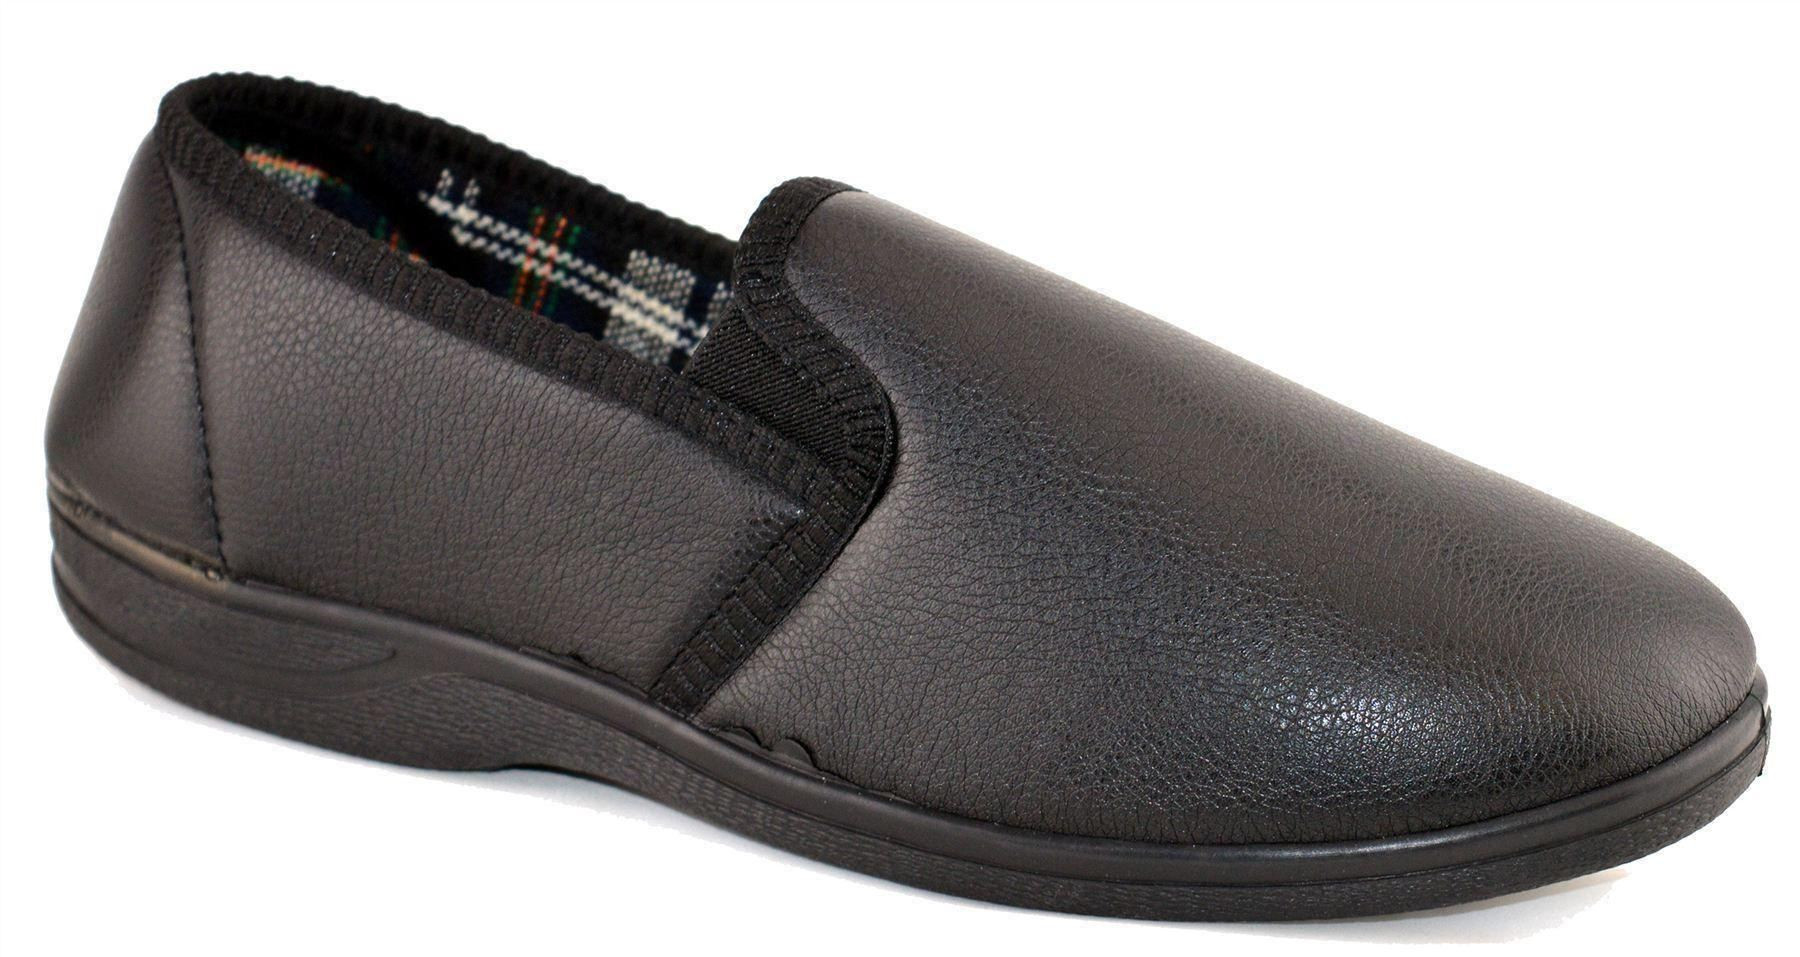 Mens Bedroom Shoes  Mens Faux Leather Cushioned Slip Rubber Sole Bedroom